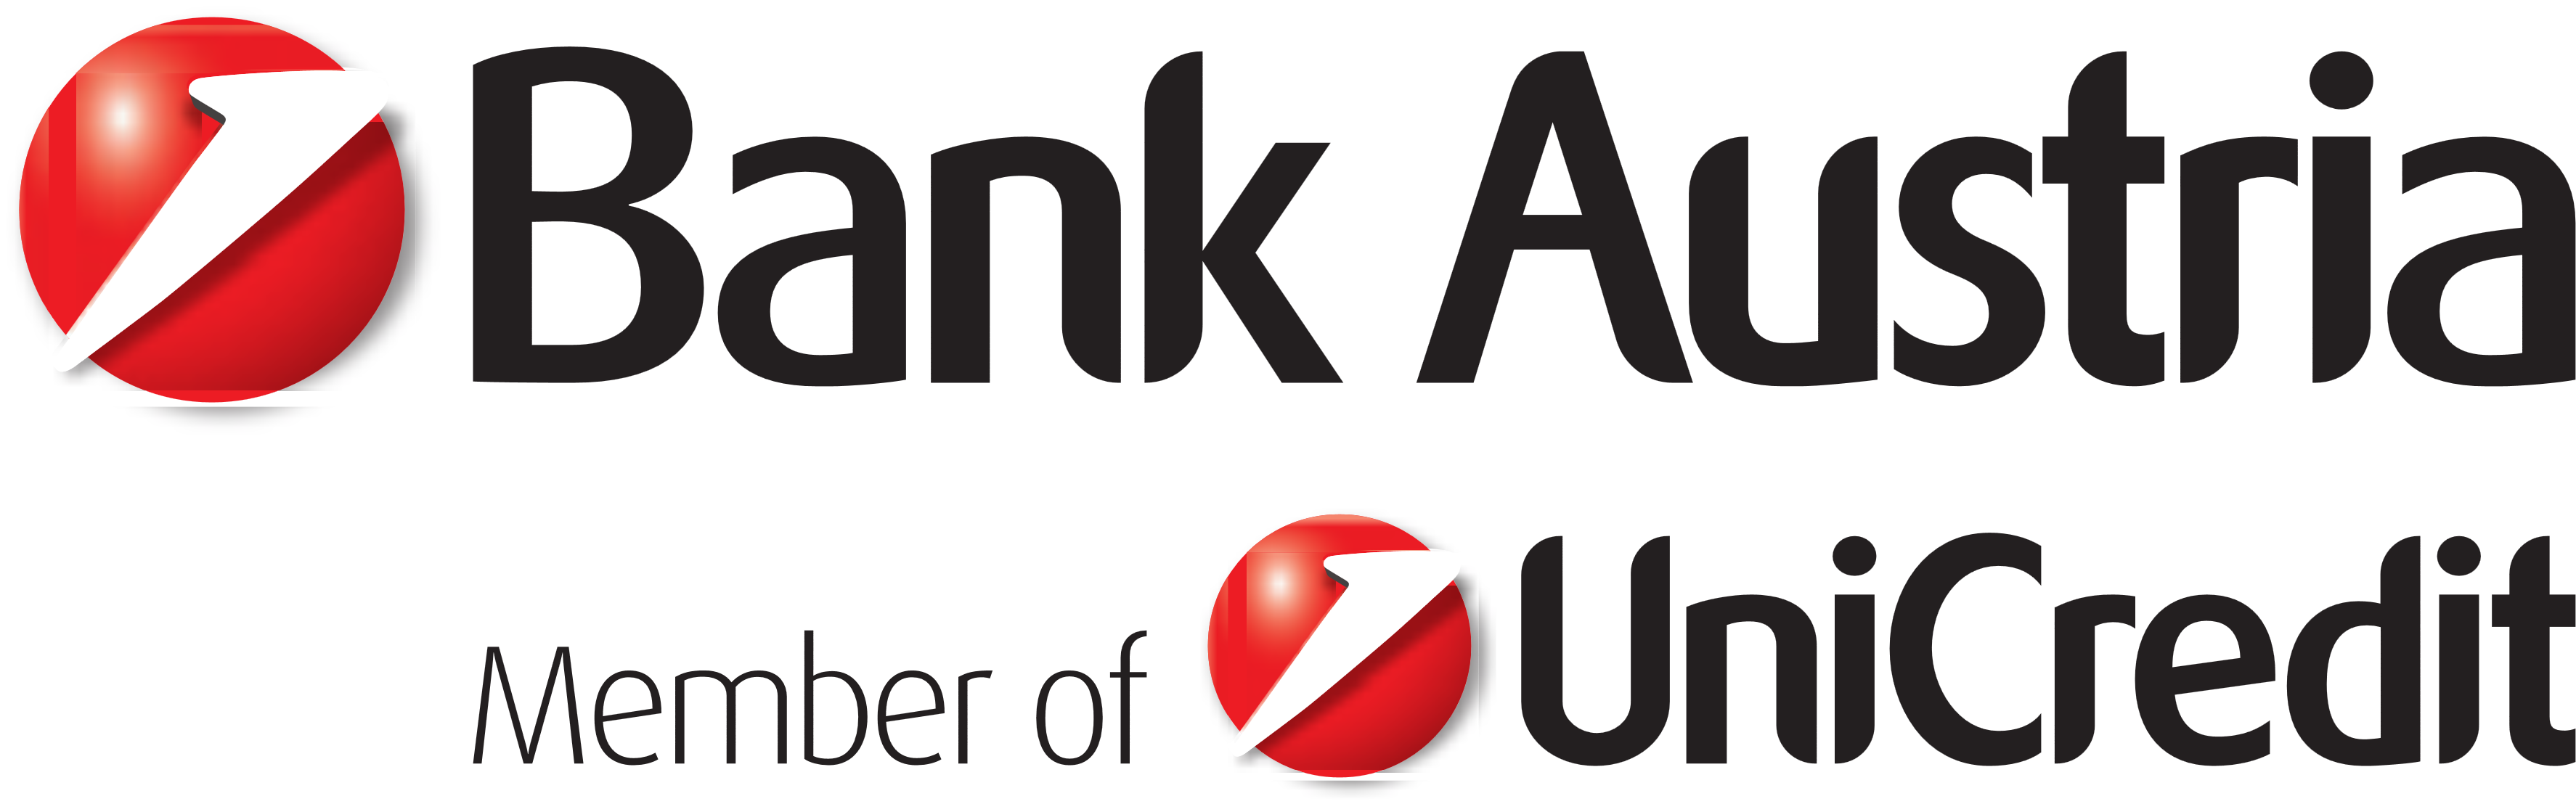 HD Bank Austria Member Of Unicredit , Free Unlimited.